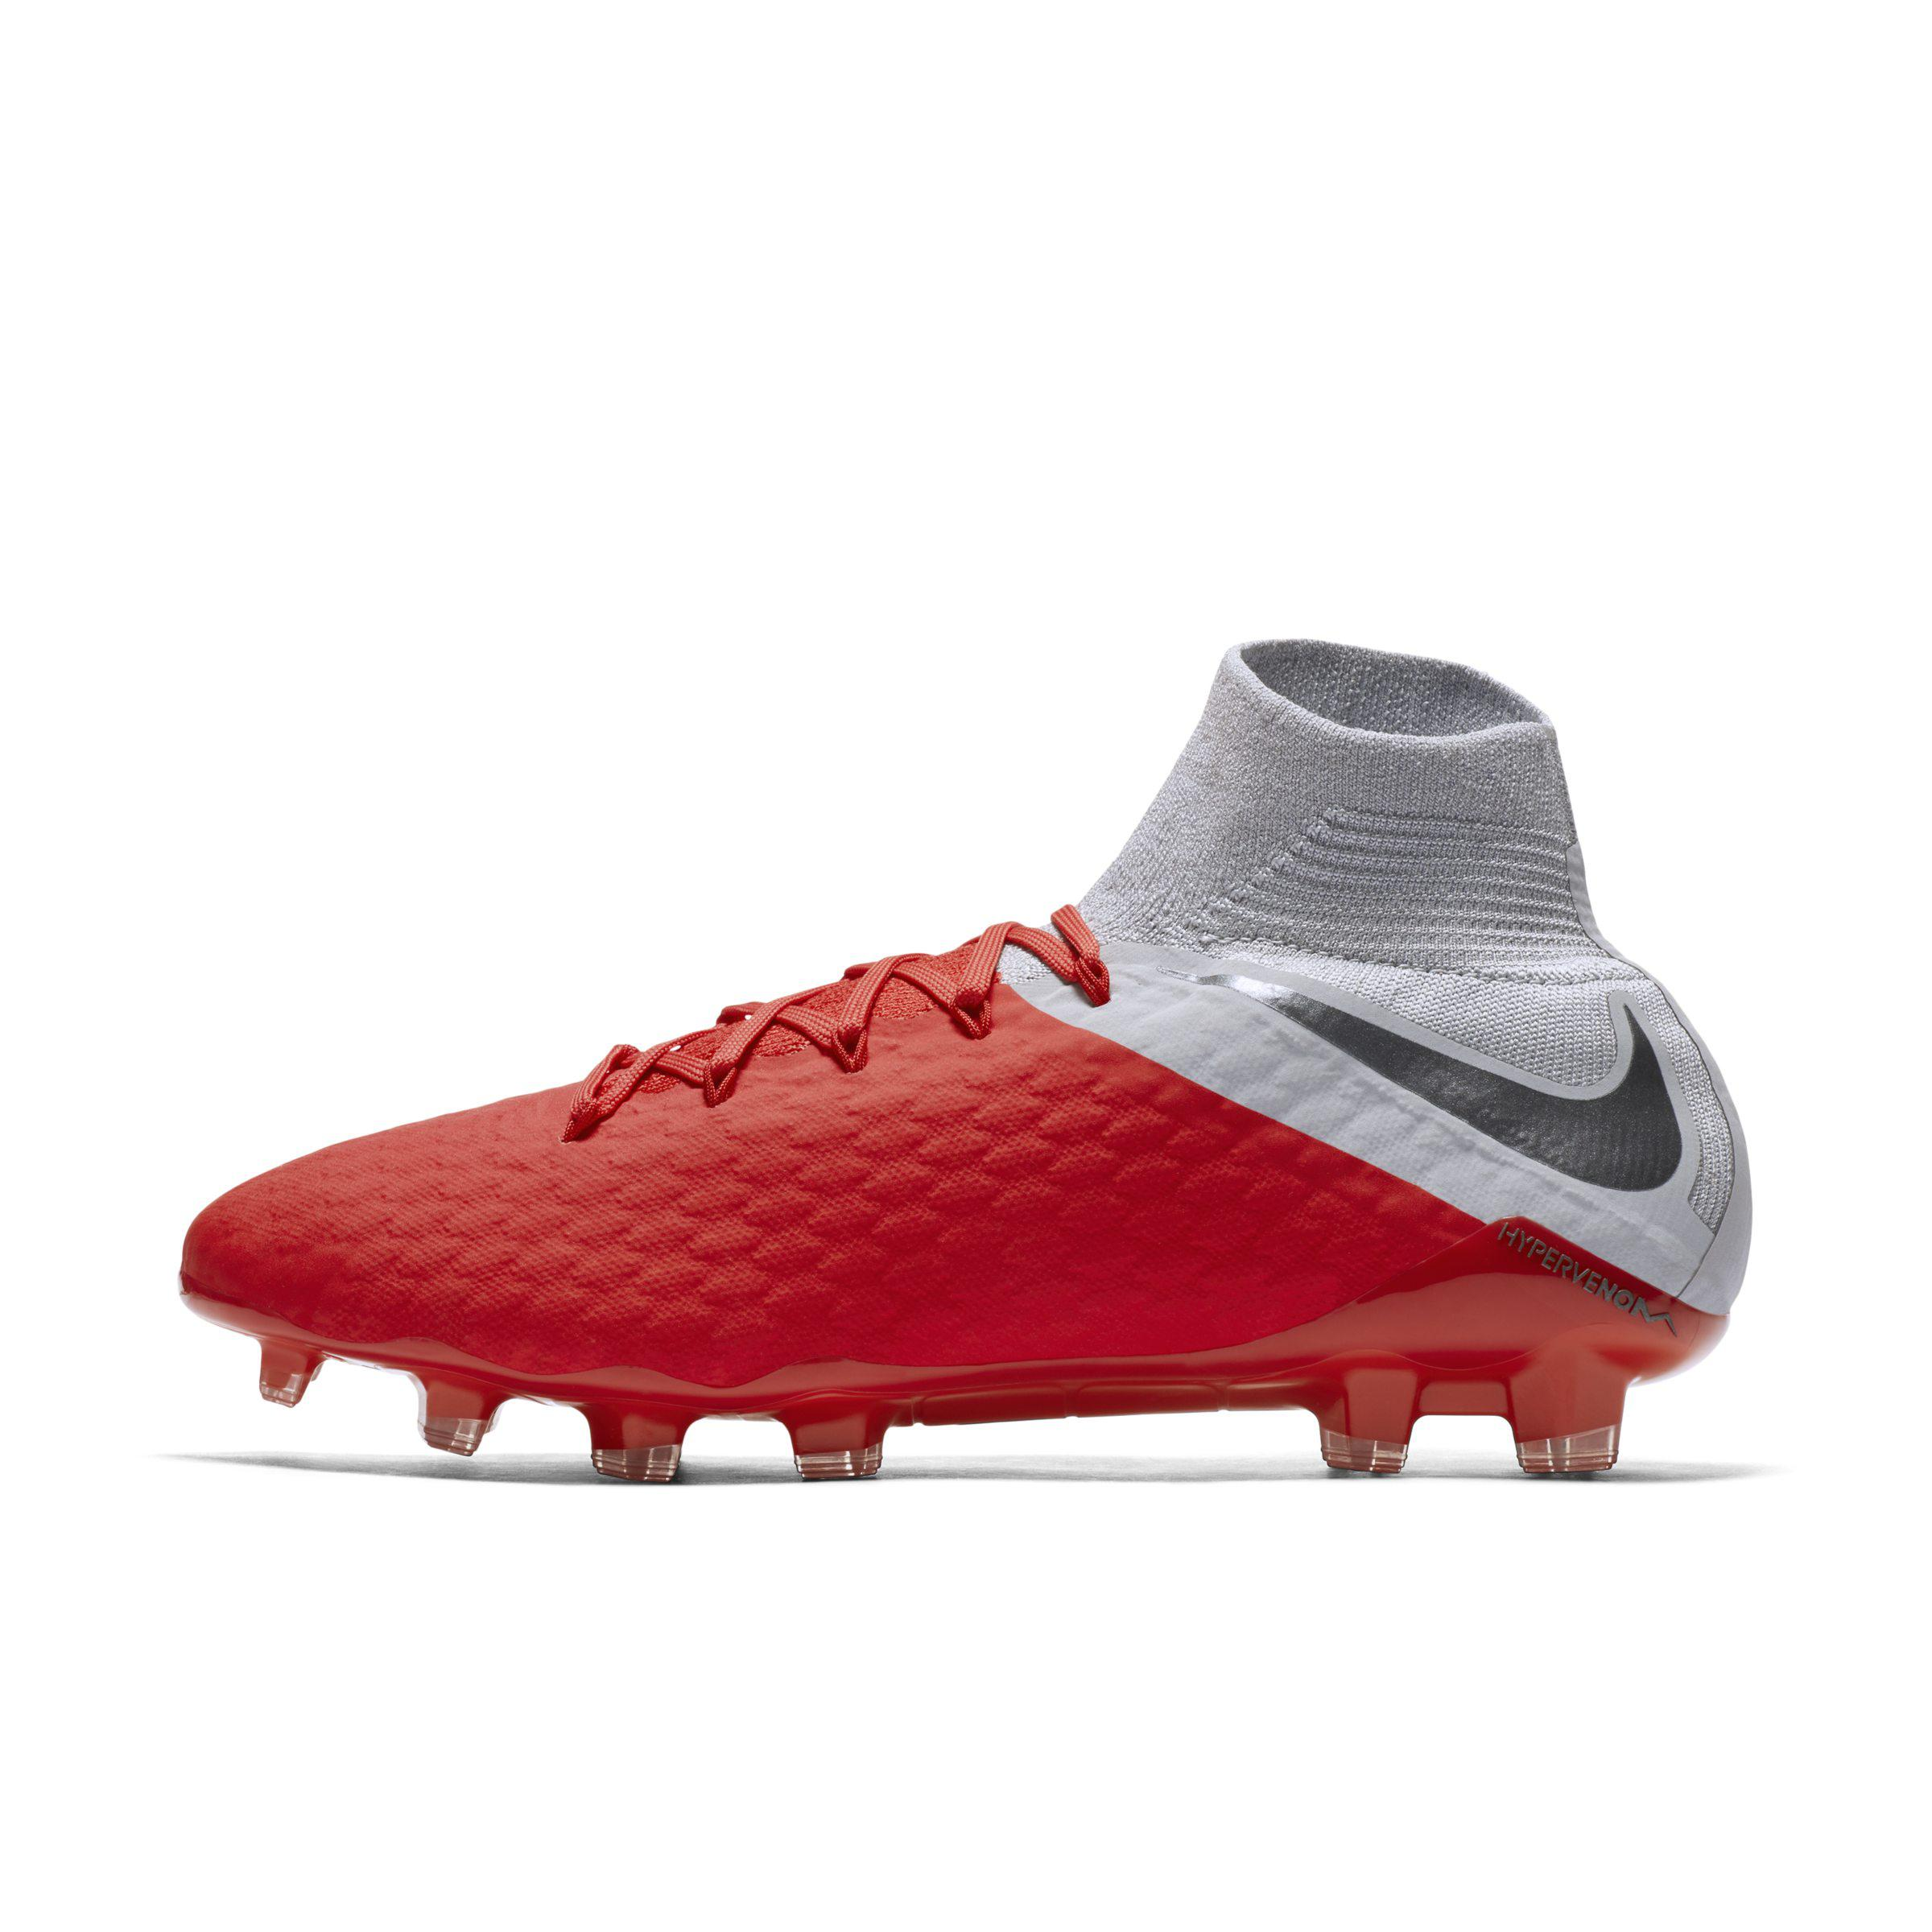 8a2ed997c367 Nike Hypervenom Iii Pro Dynamic Fit Firm-ground Football Boot in Red ...